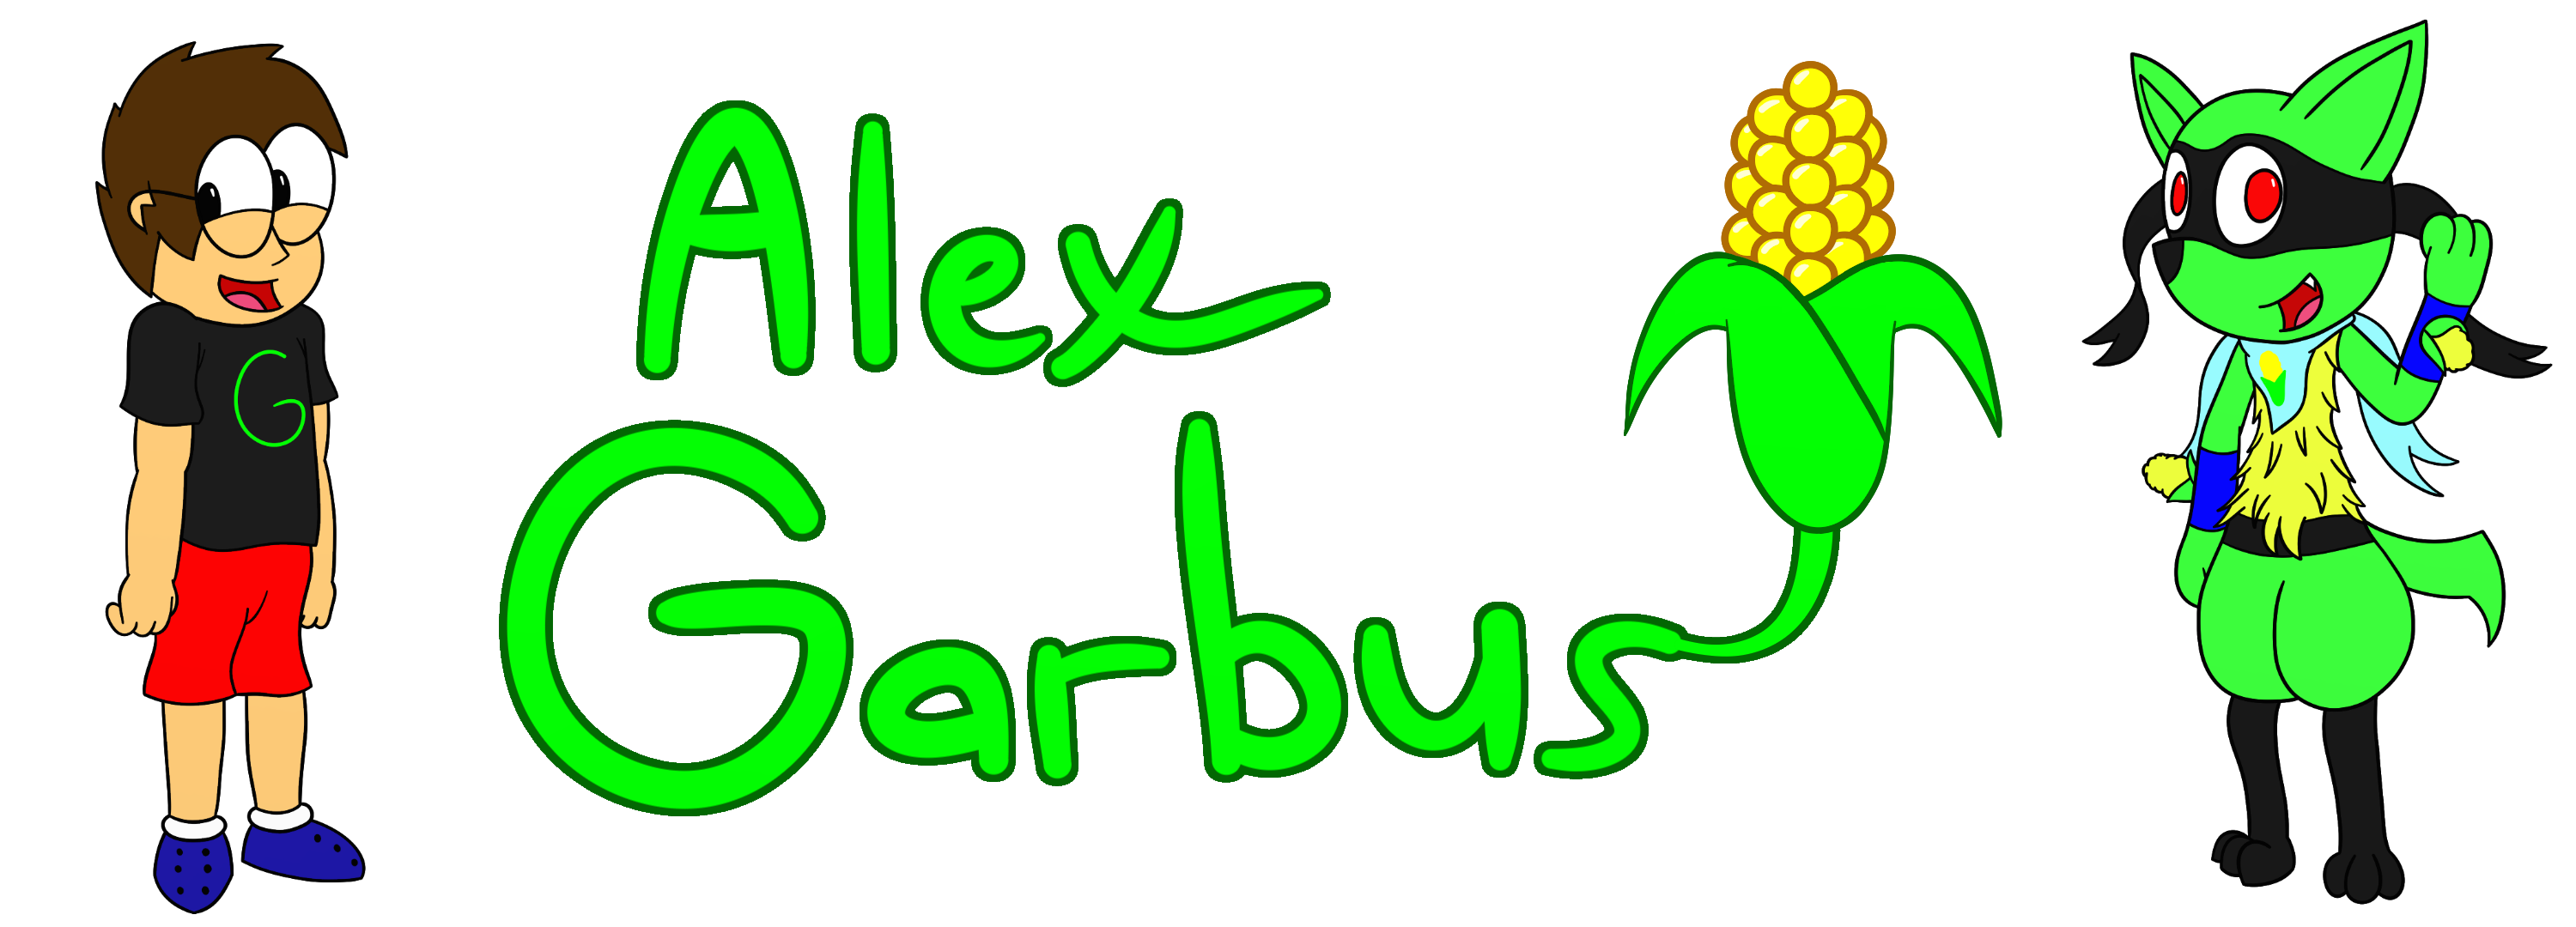 Alex Garbus